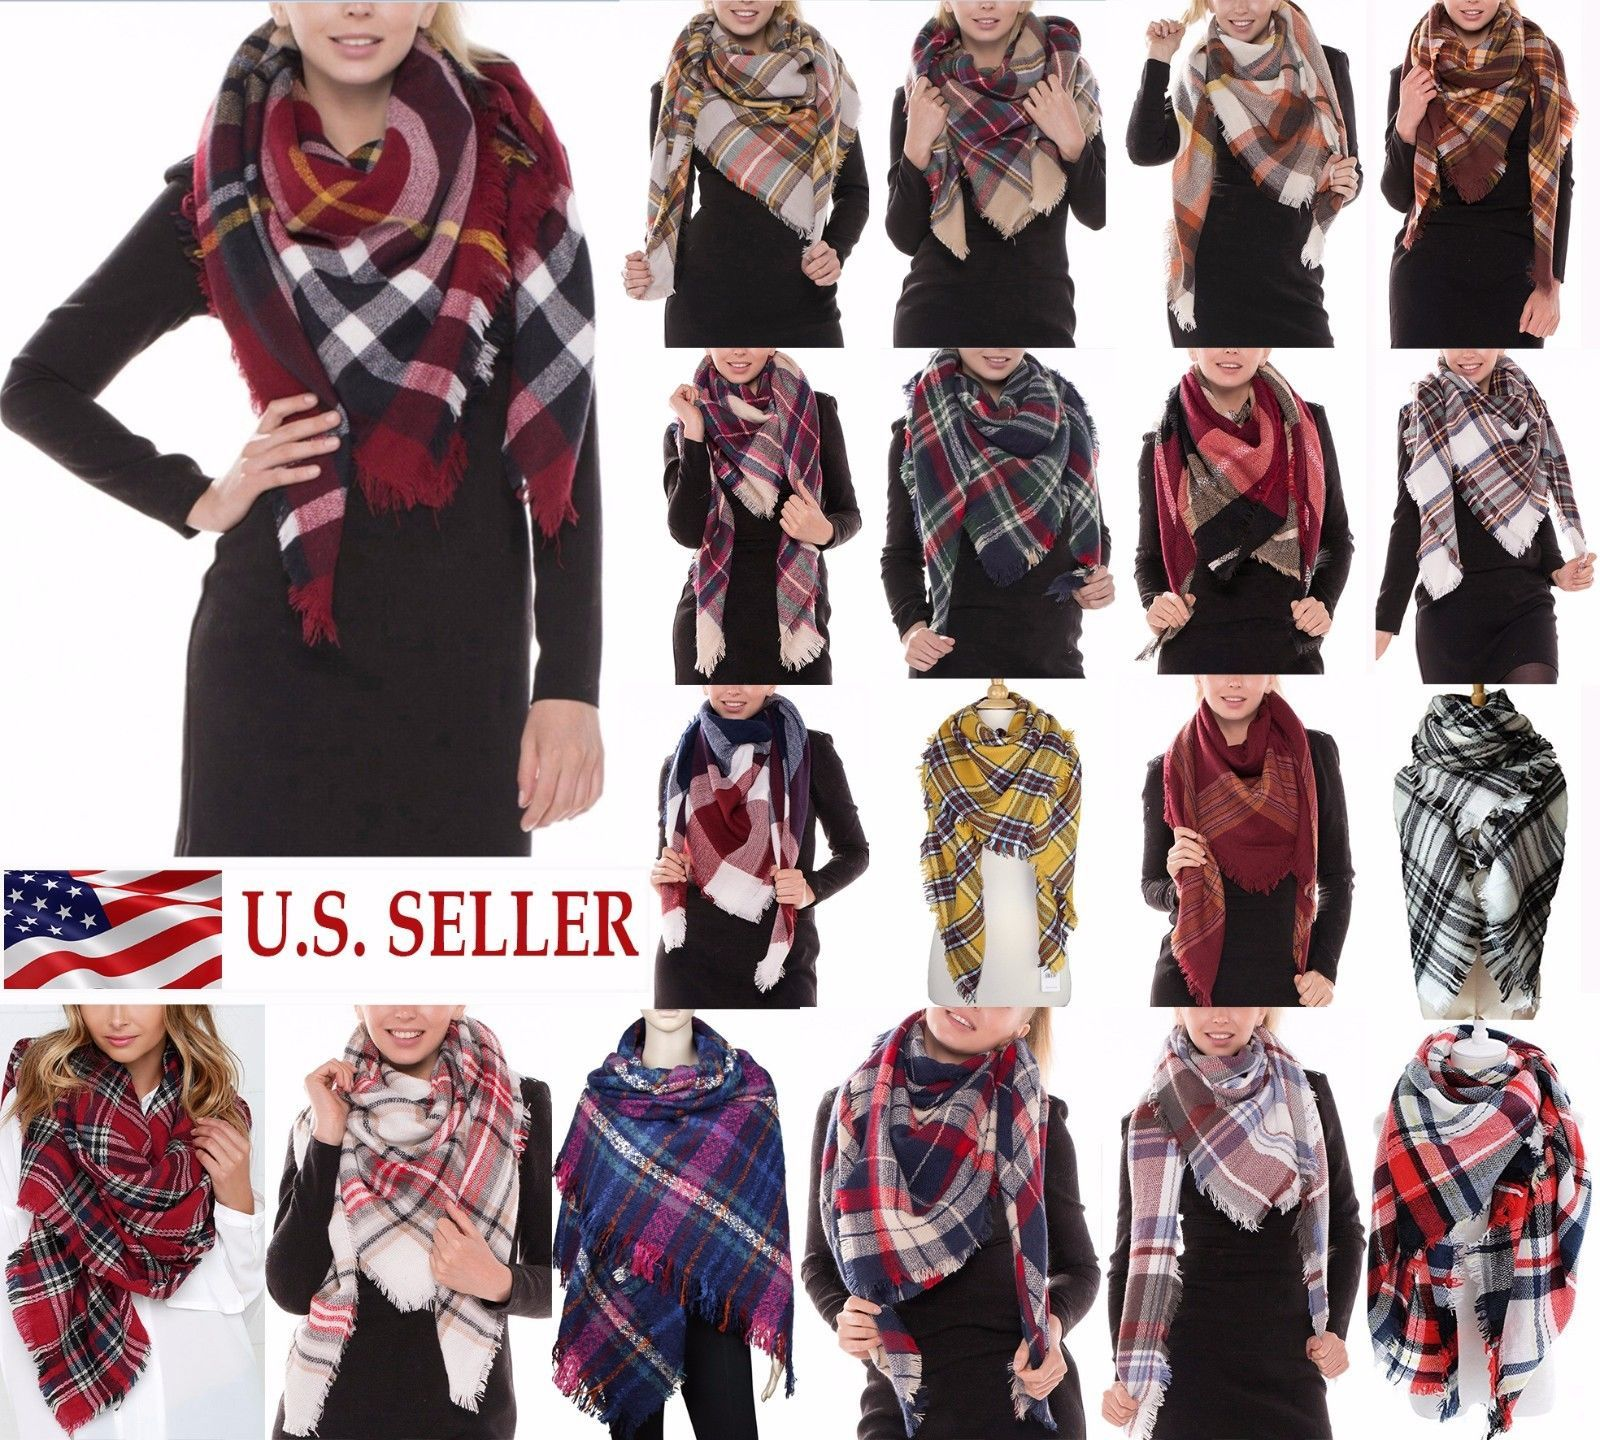 Red Lady Women Winter Long Scarf Wrap Blanket Oversized Shawl Plaid Check Tartan